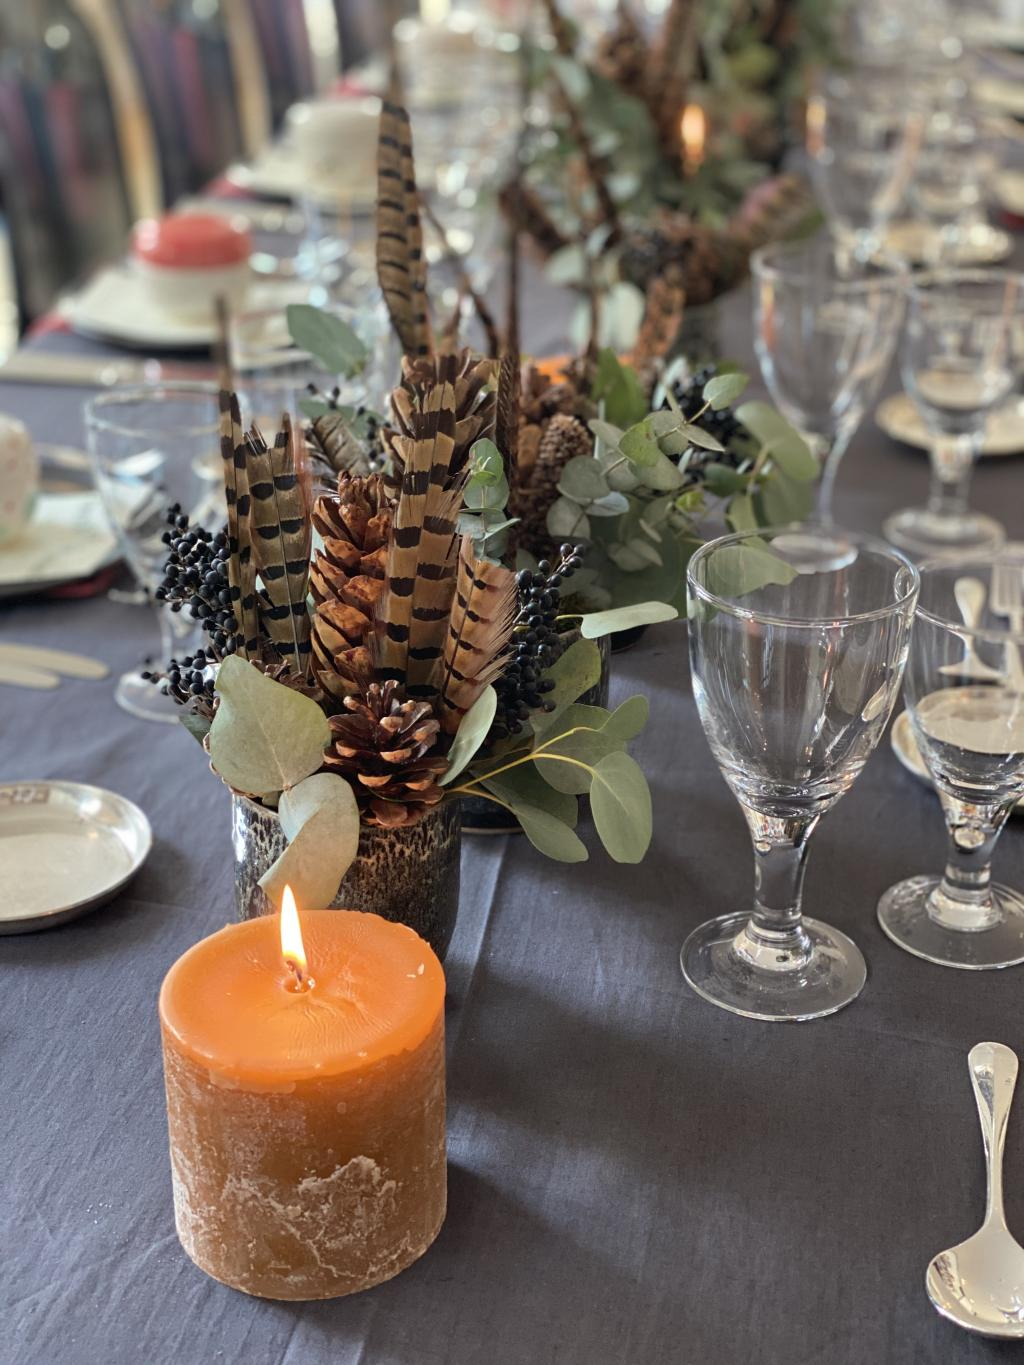 Arch ladies lunch - Image 11